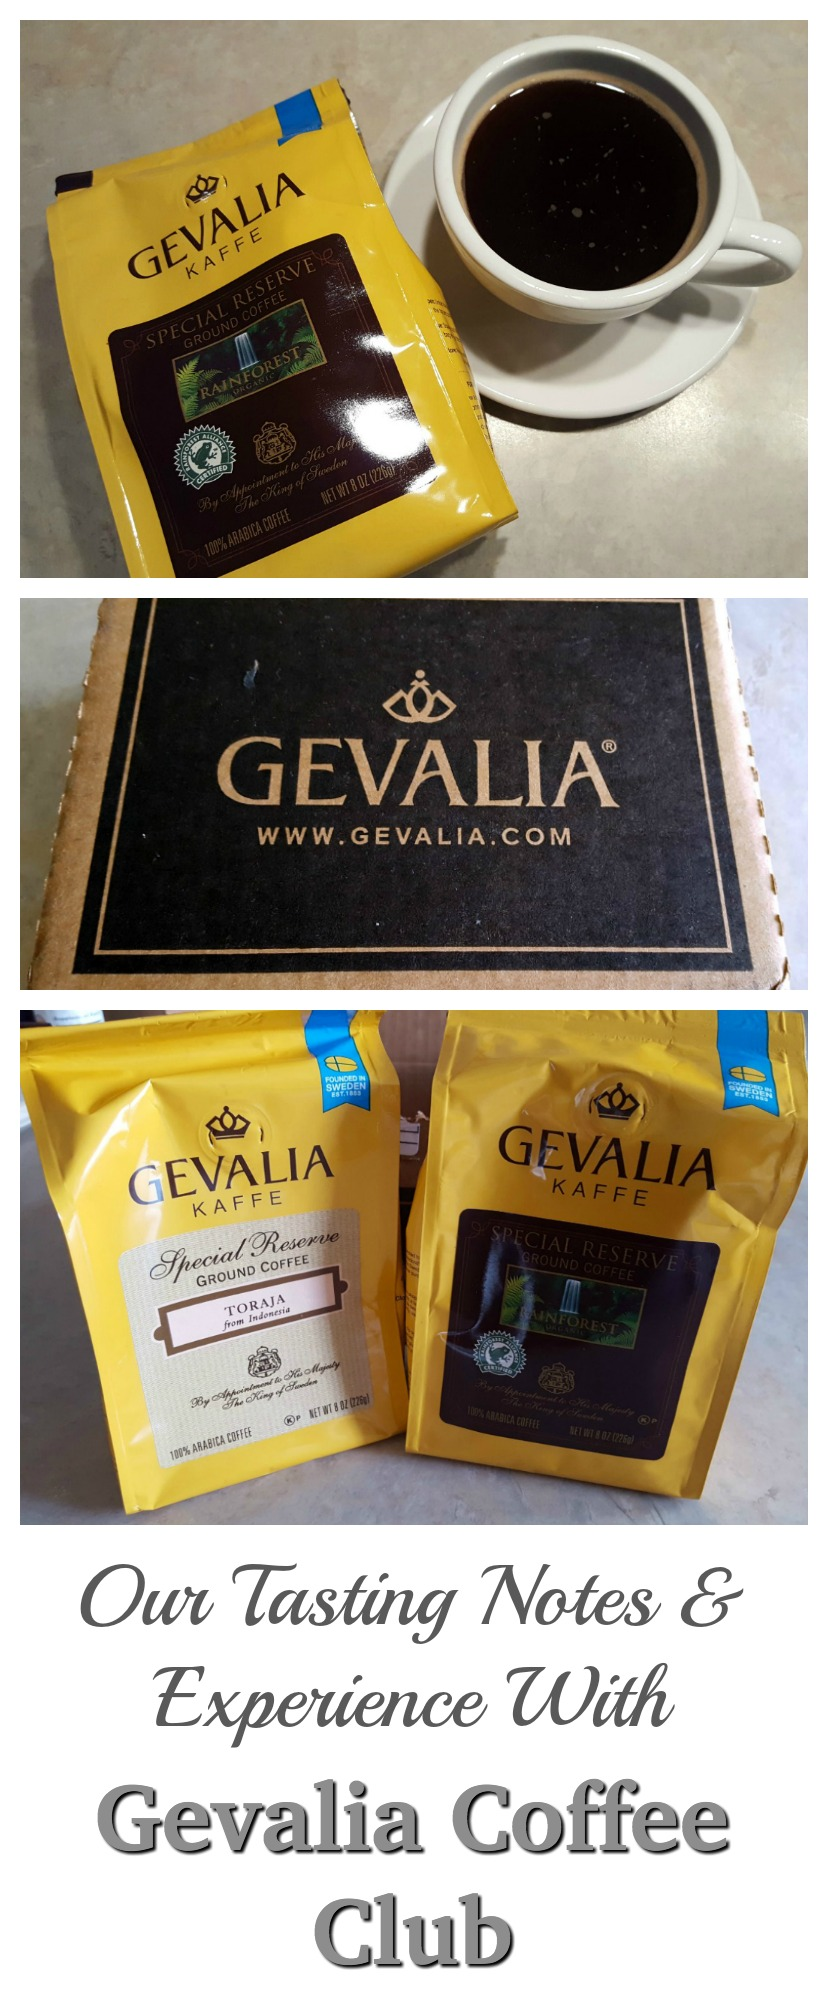 You will want to read our Tasting Notes before subscribing to the Gevalia Coffee Club!